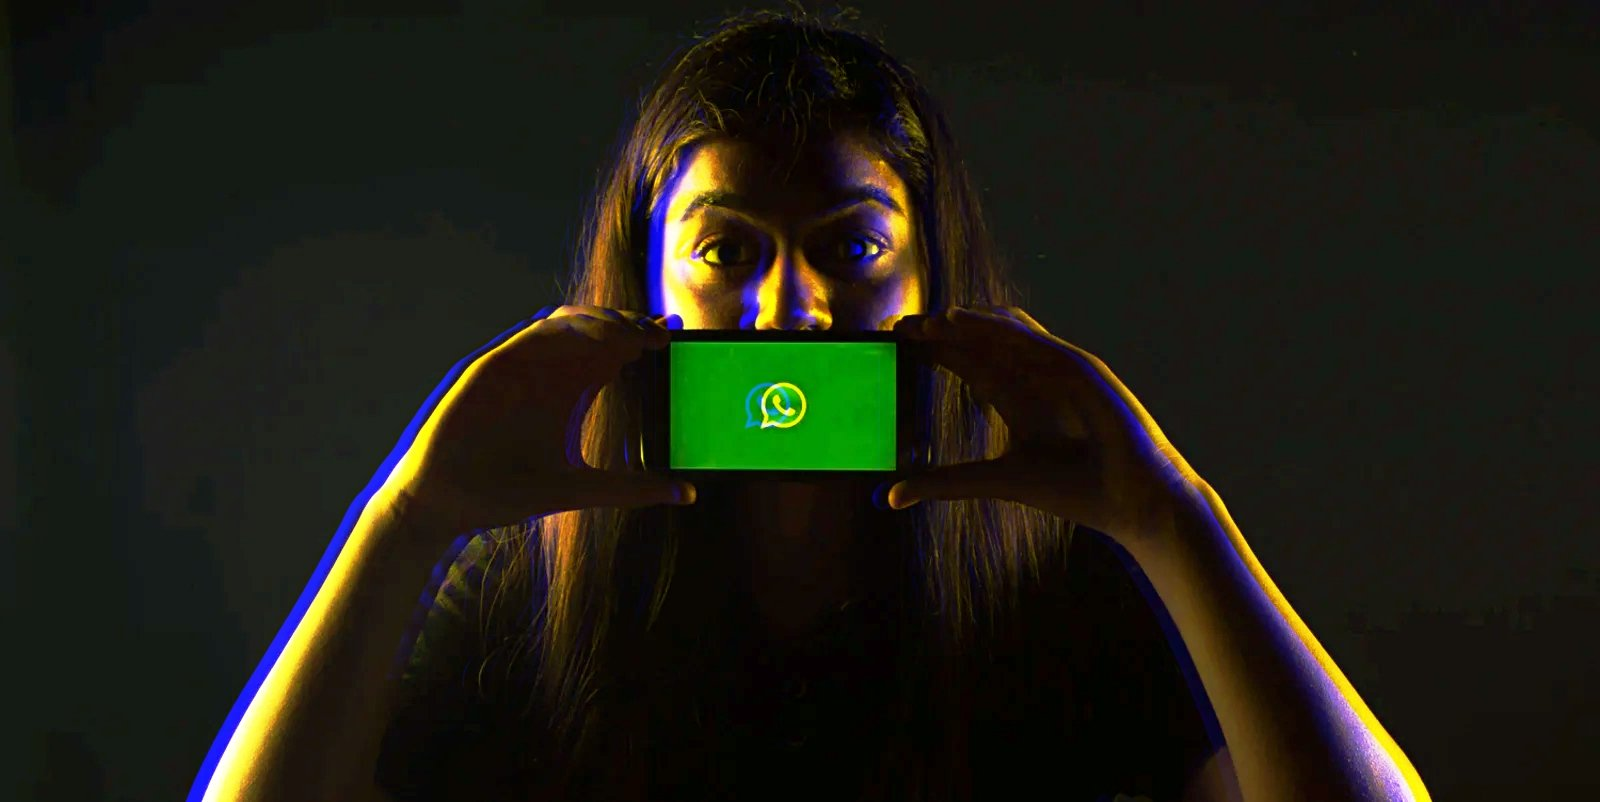 WhatsApp: Accounts refusing Facebook data sharing will not be deleted